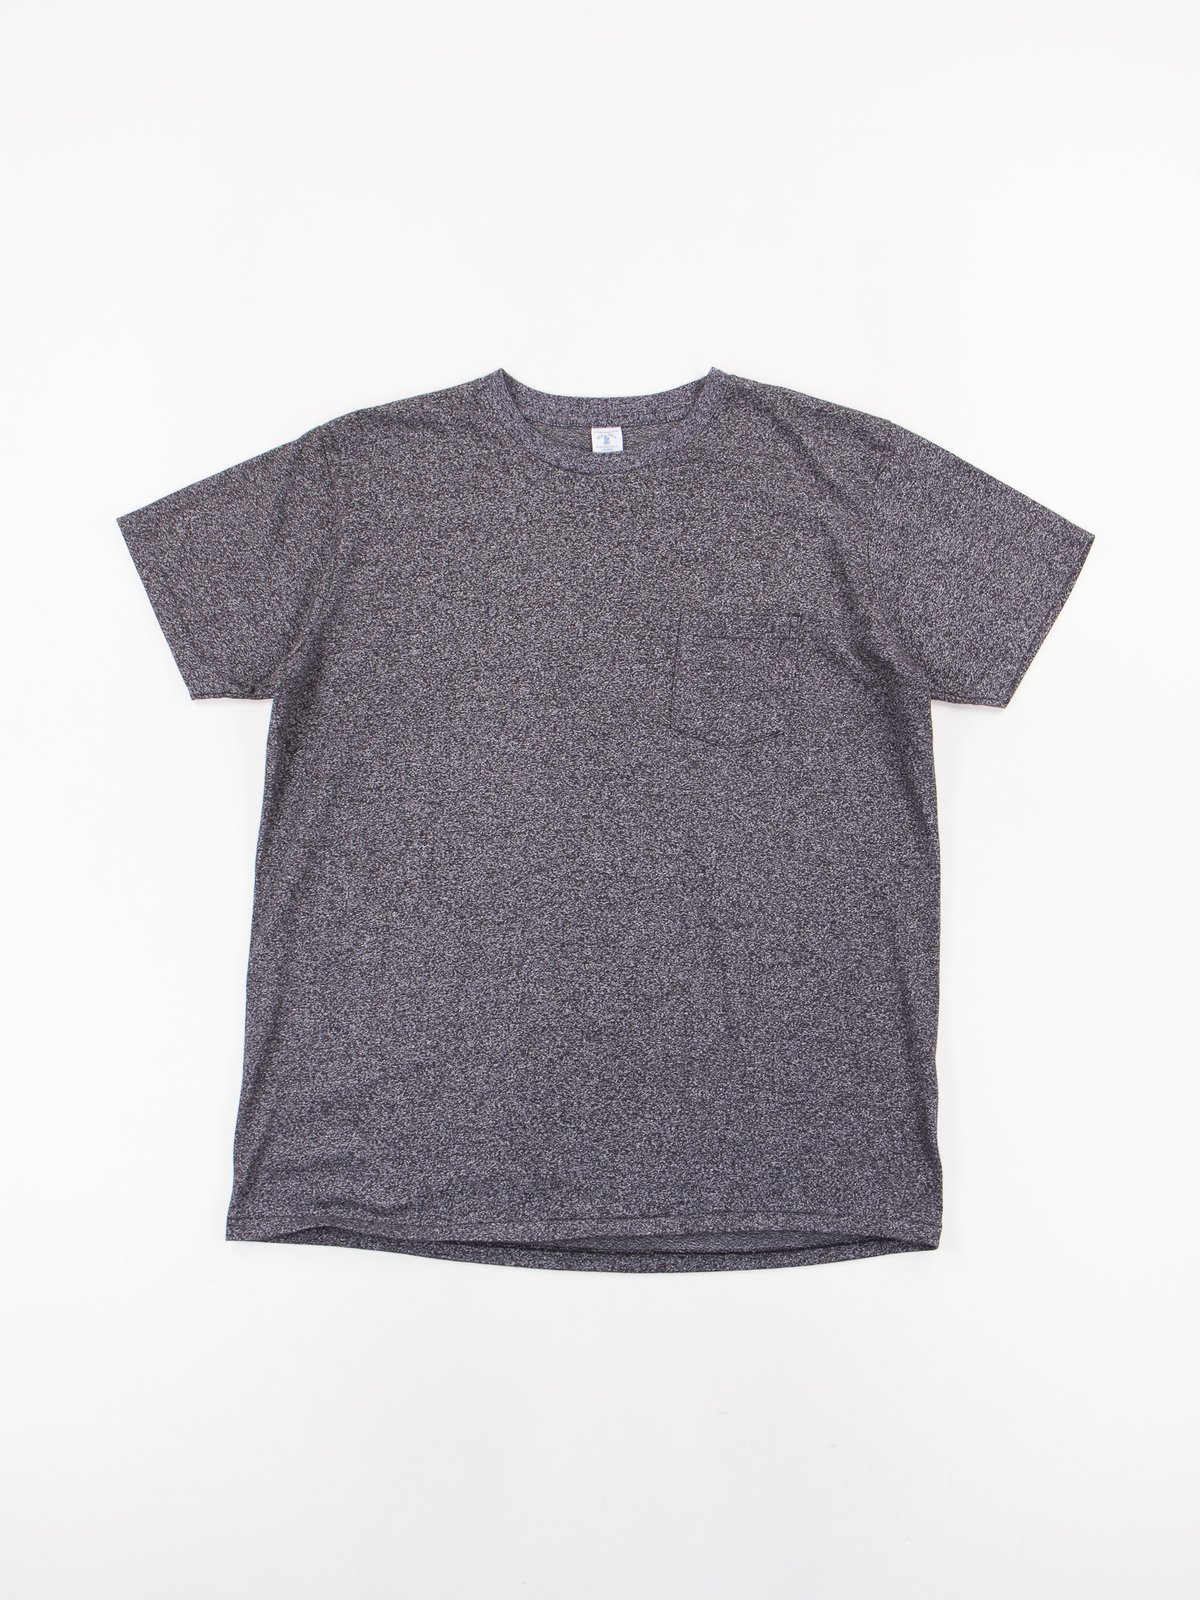 Heather Black 1–Pac Pocket Tee - Image 2